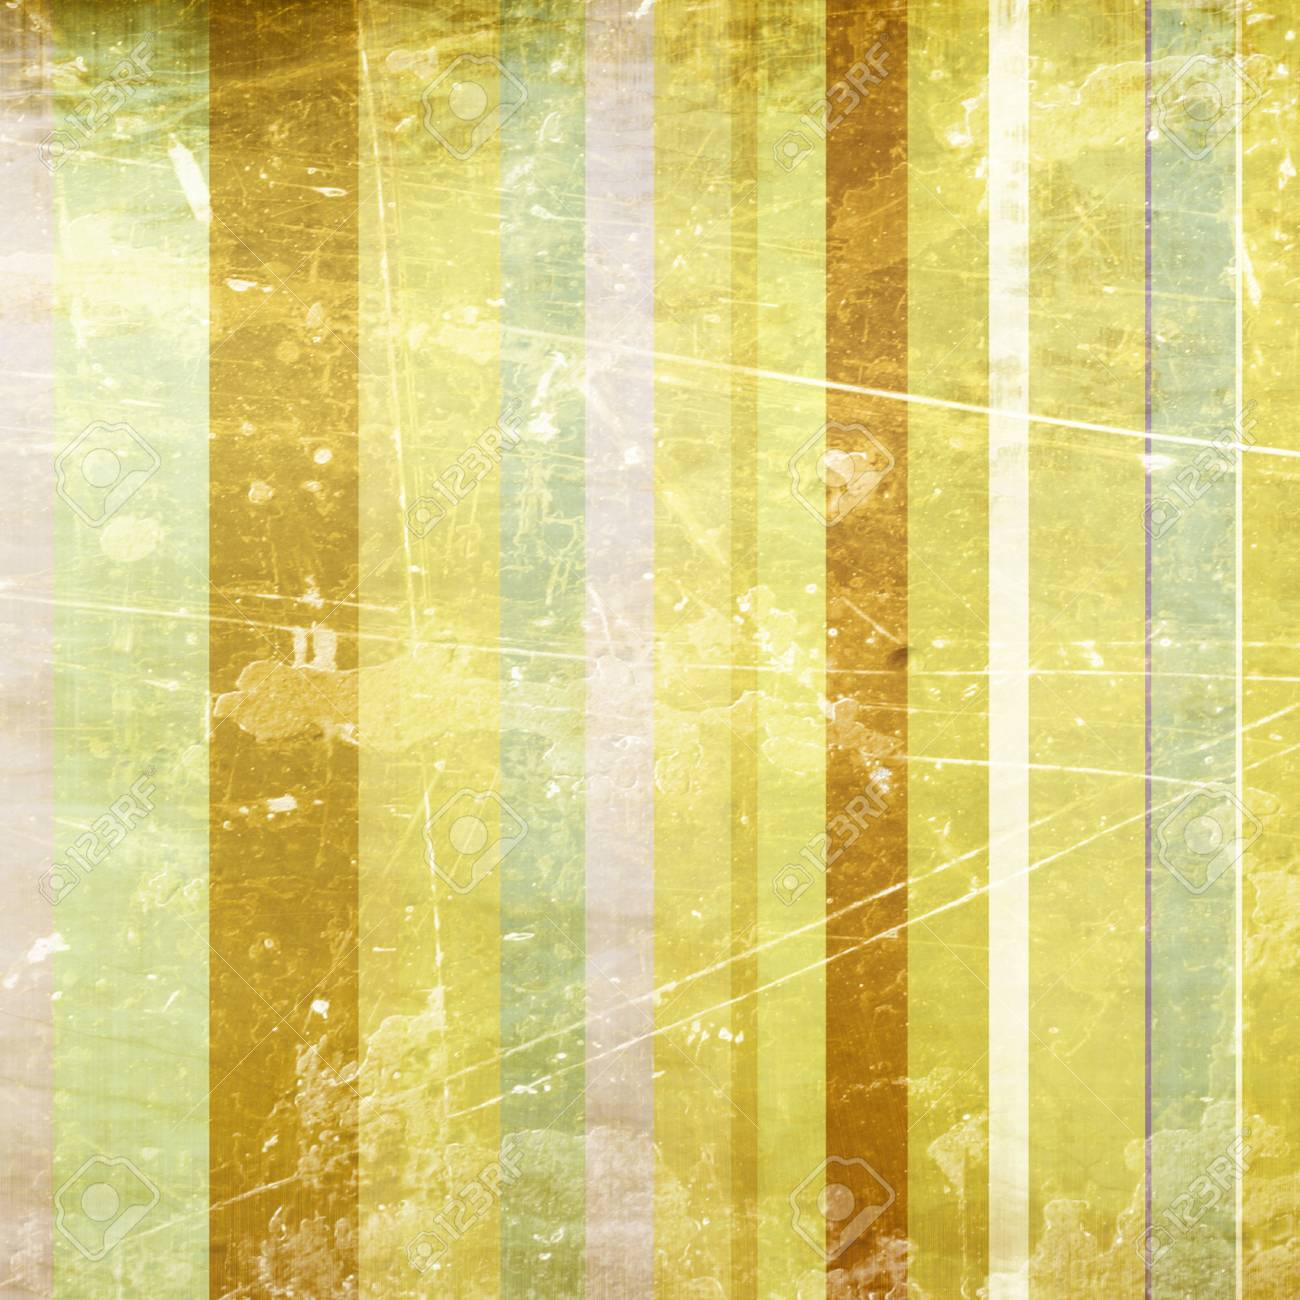 Vintage striped background with some damage in it Stock Photo - 14776398